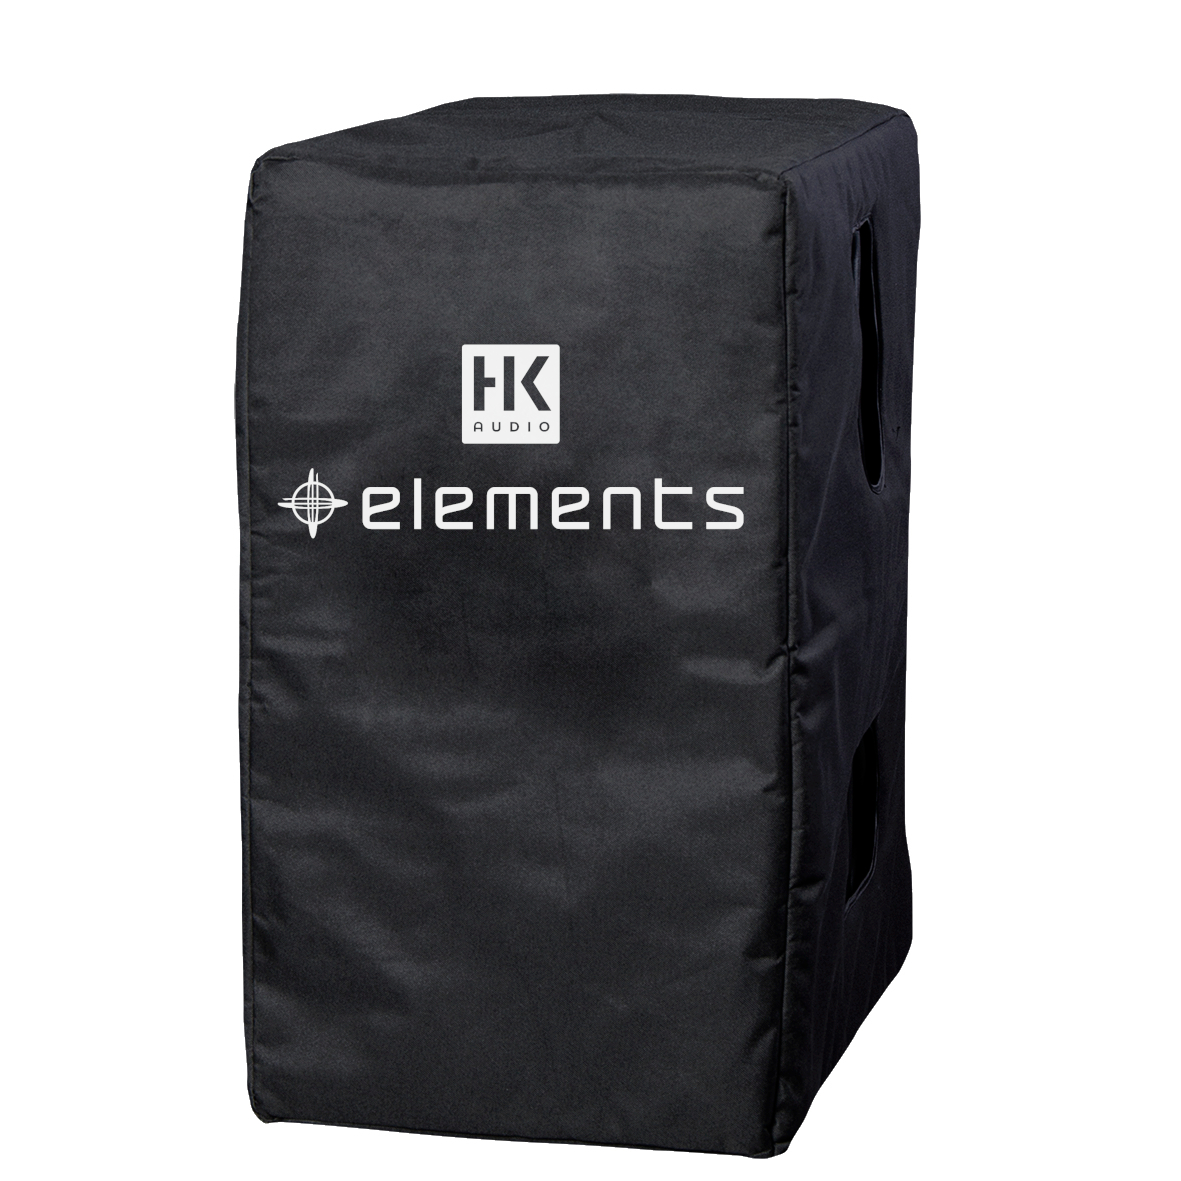 ELEMENTS_SUBCOVER-3